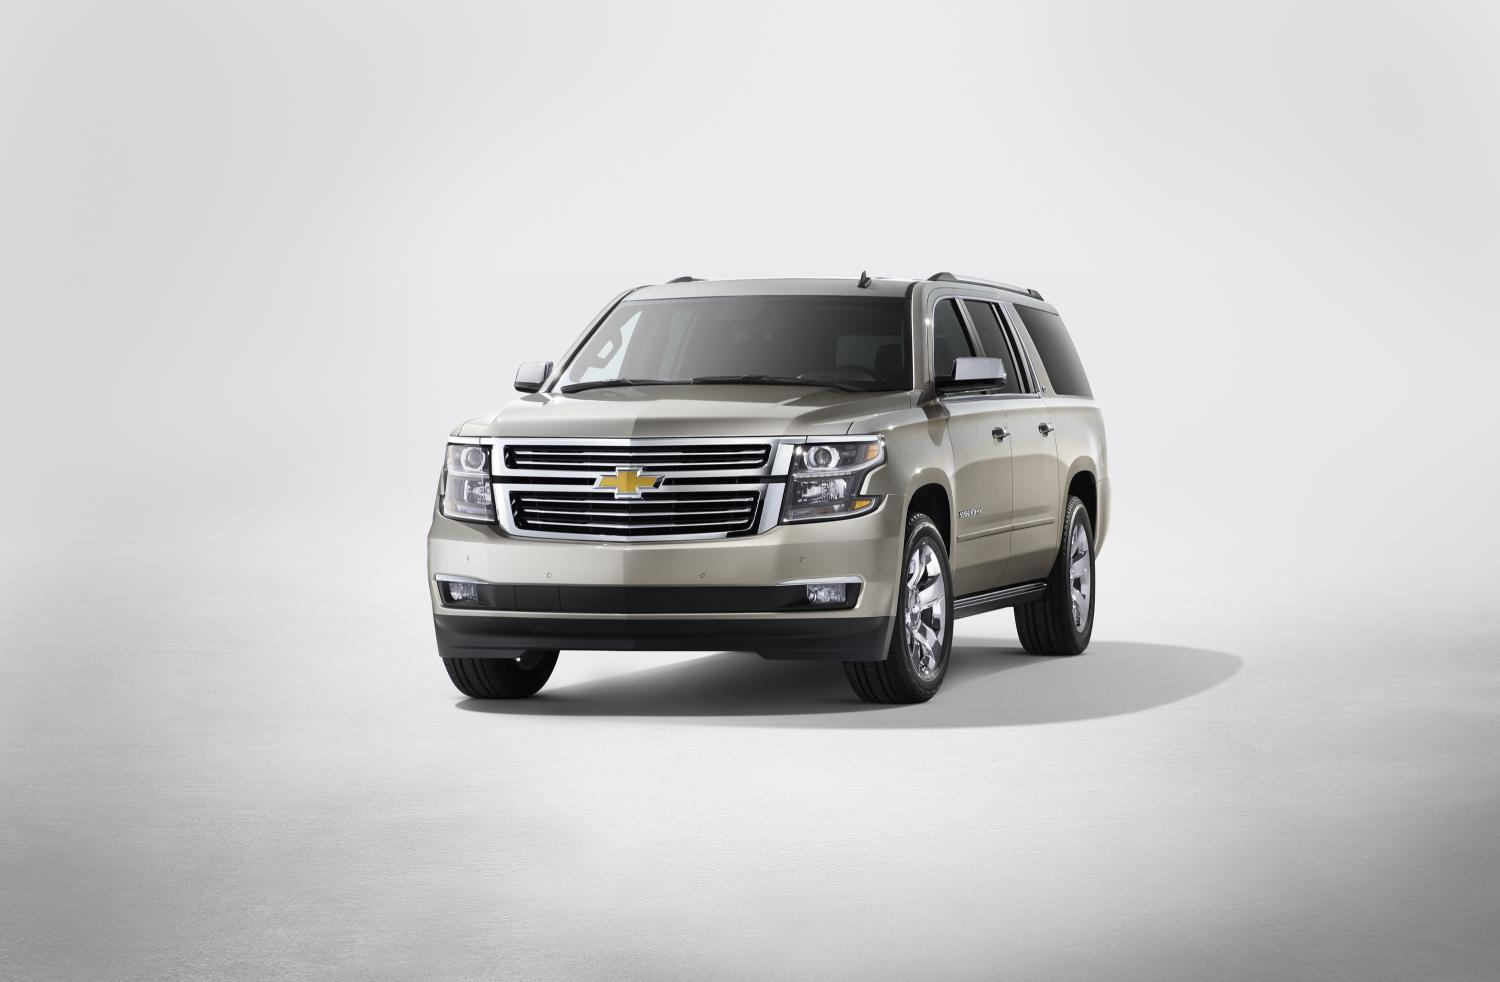 2015 chevrolet tahoe and suburban 2015 chevrolet tahoe and suburban